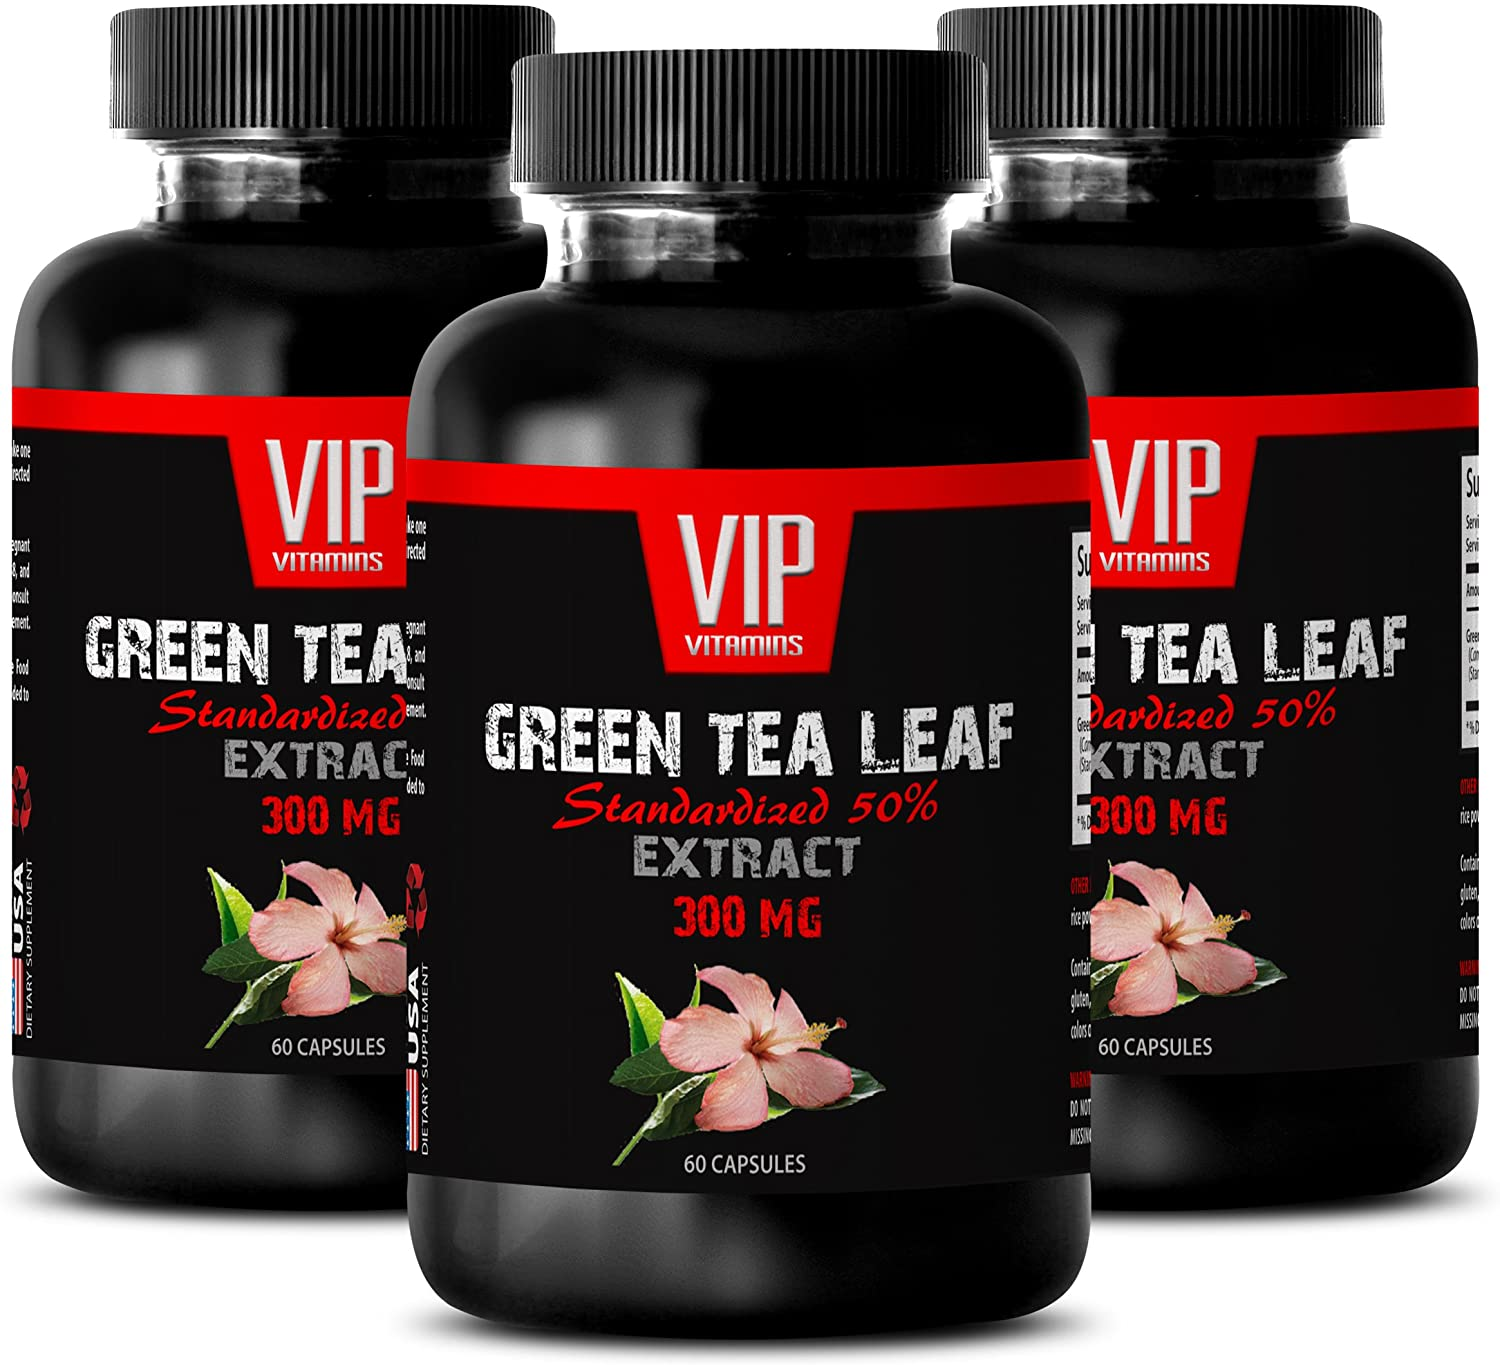 antioxidant Vitamins and Minerals - Green Tea Leaf Extract 300 MG - STANDARDIZED 50% - Green Tea Fat Burner Supplements - 3 Bottles 180 Capsules